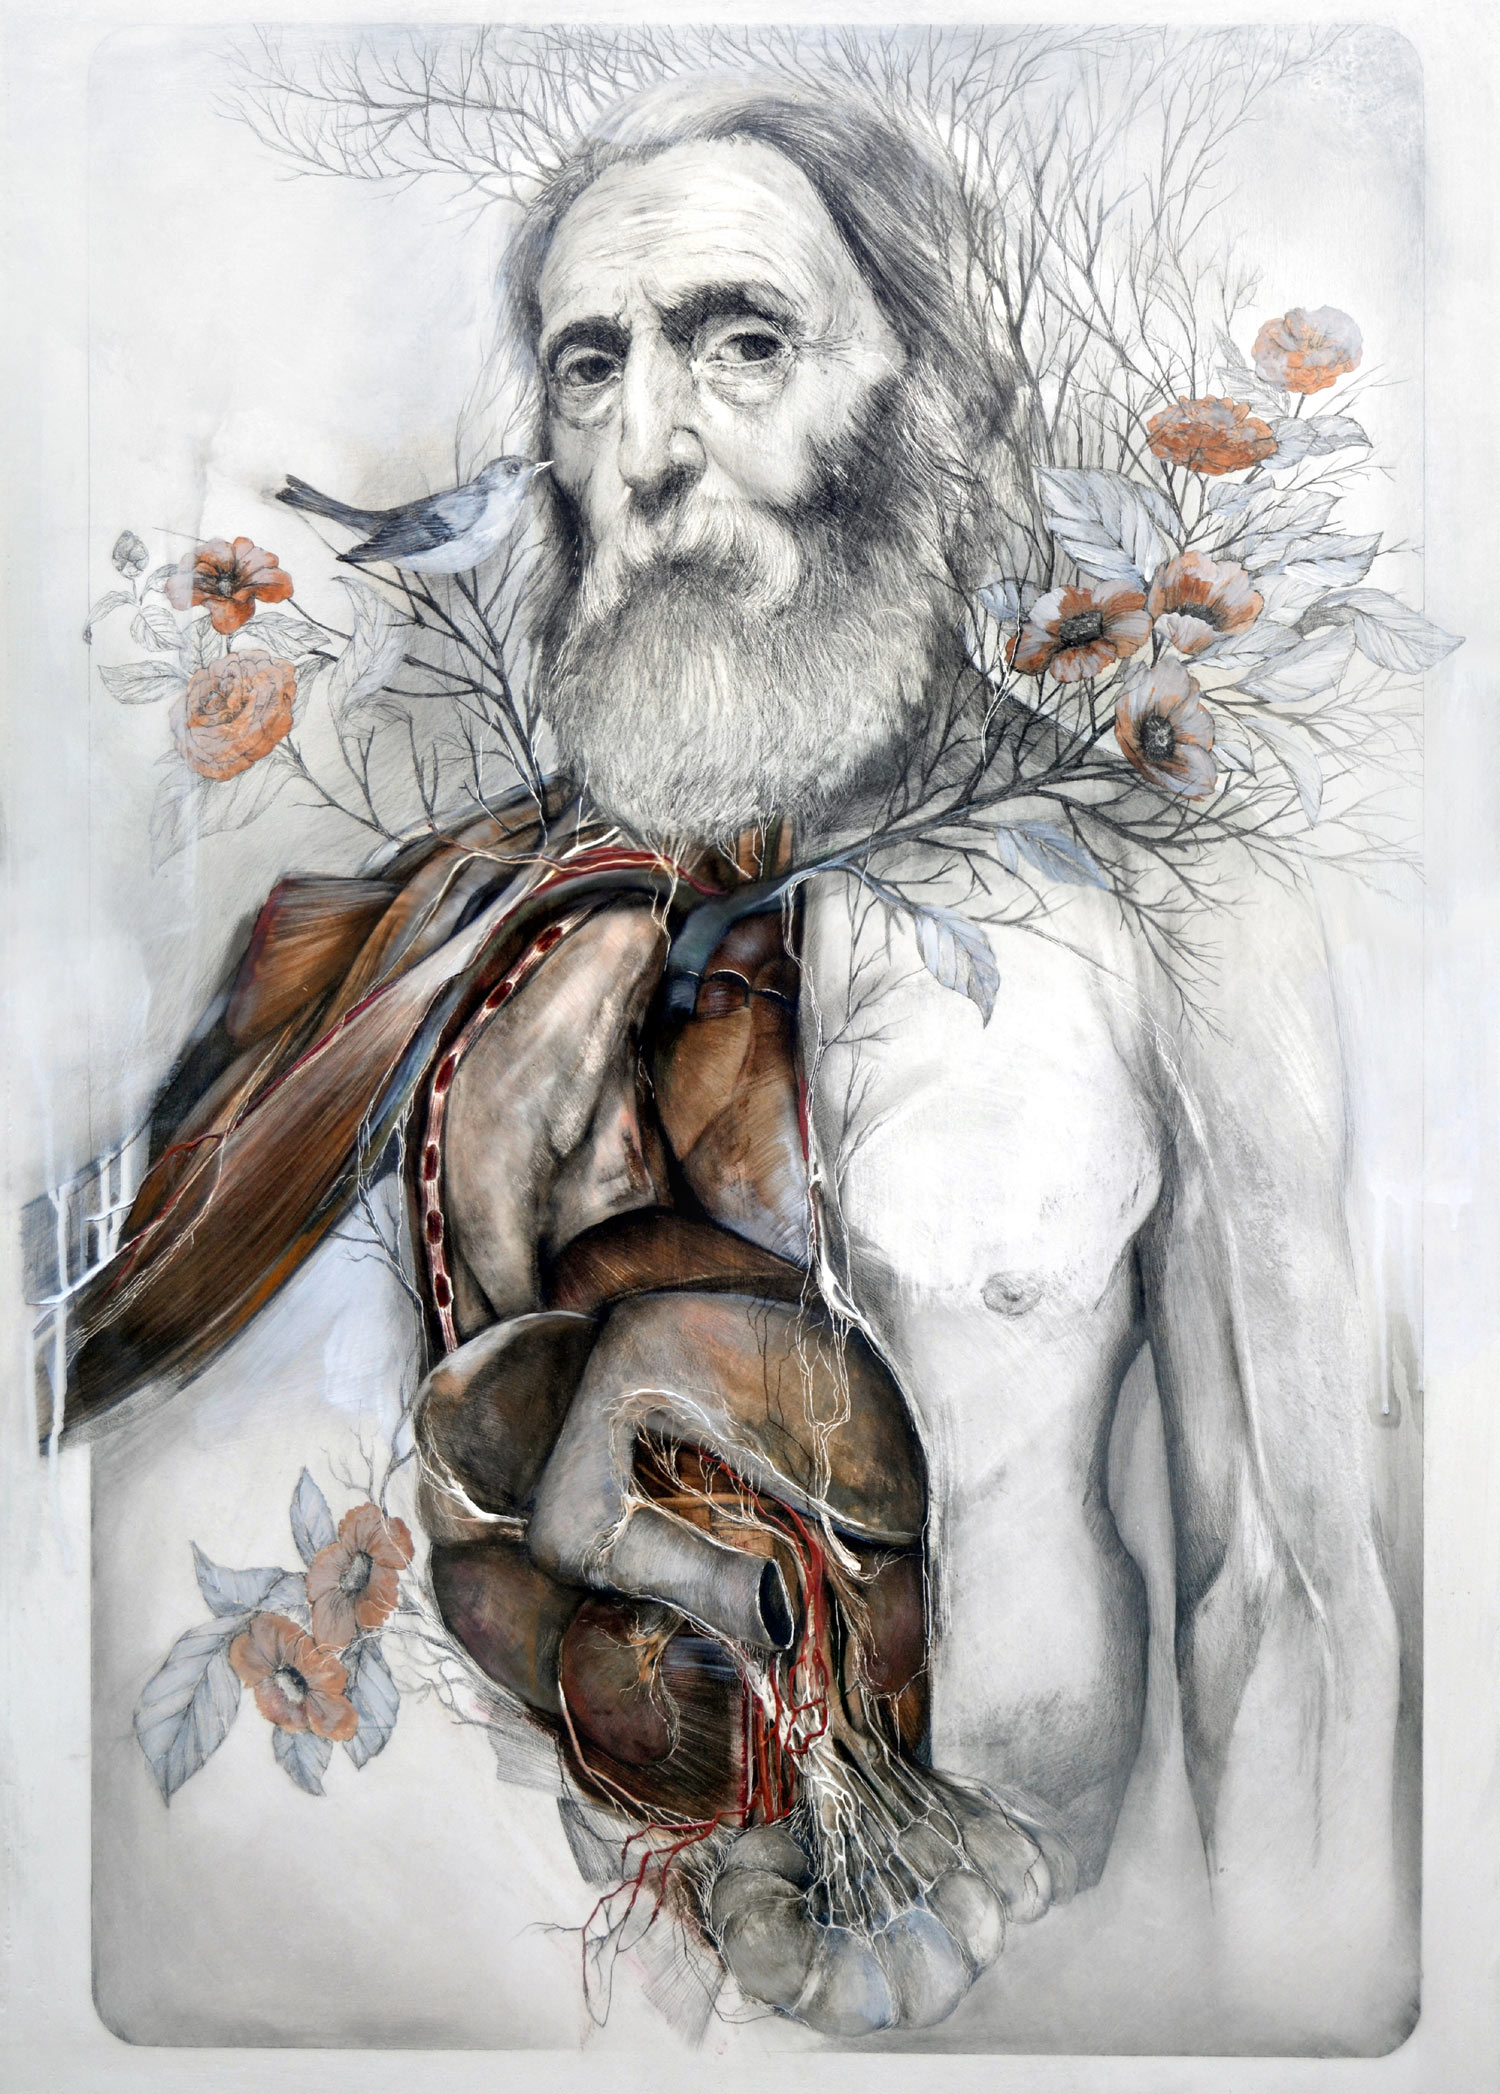 Nunzio Paci, The Slow Sprouting of the Flesh - man with internal organs exposed with flowers growing from shoulders